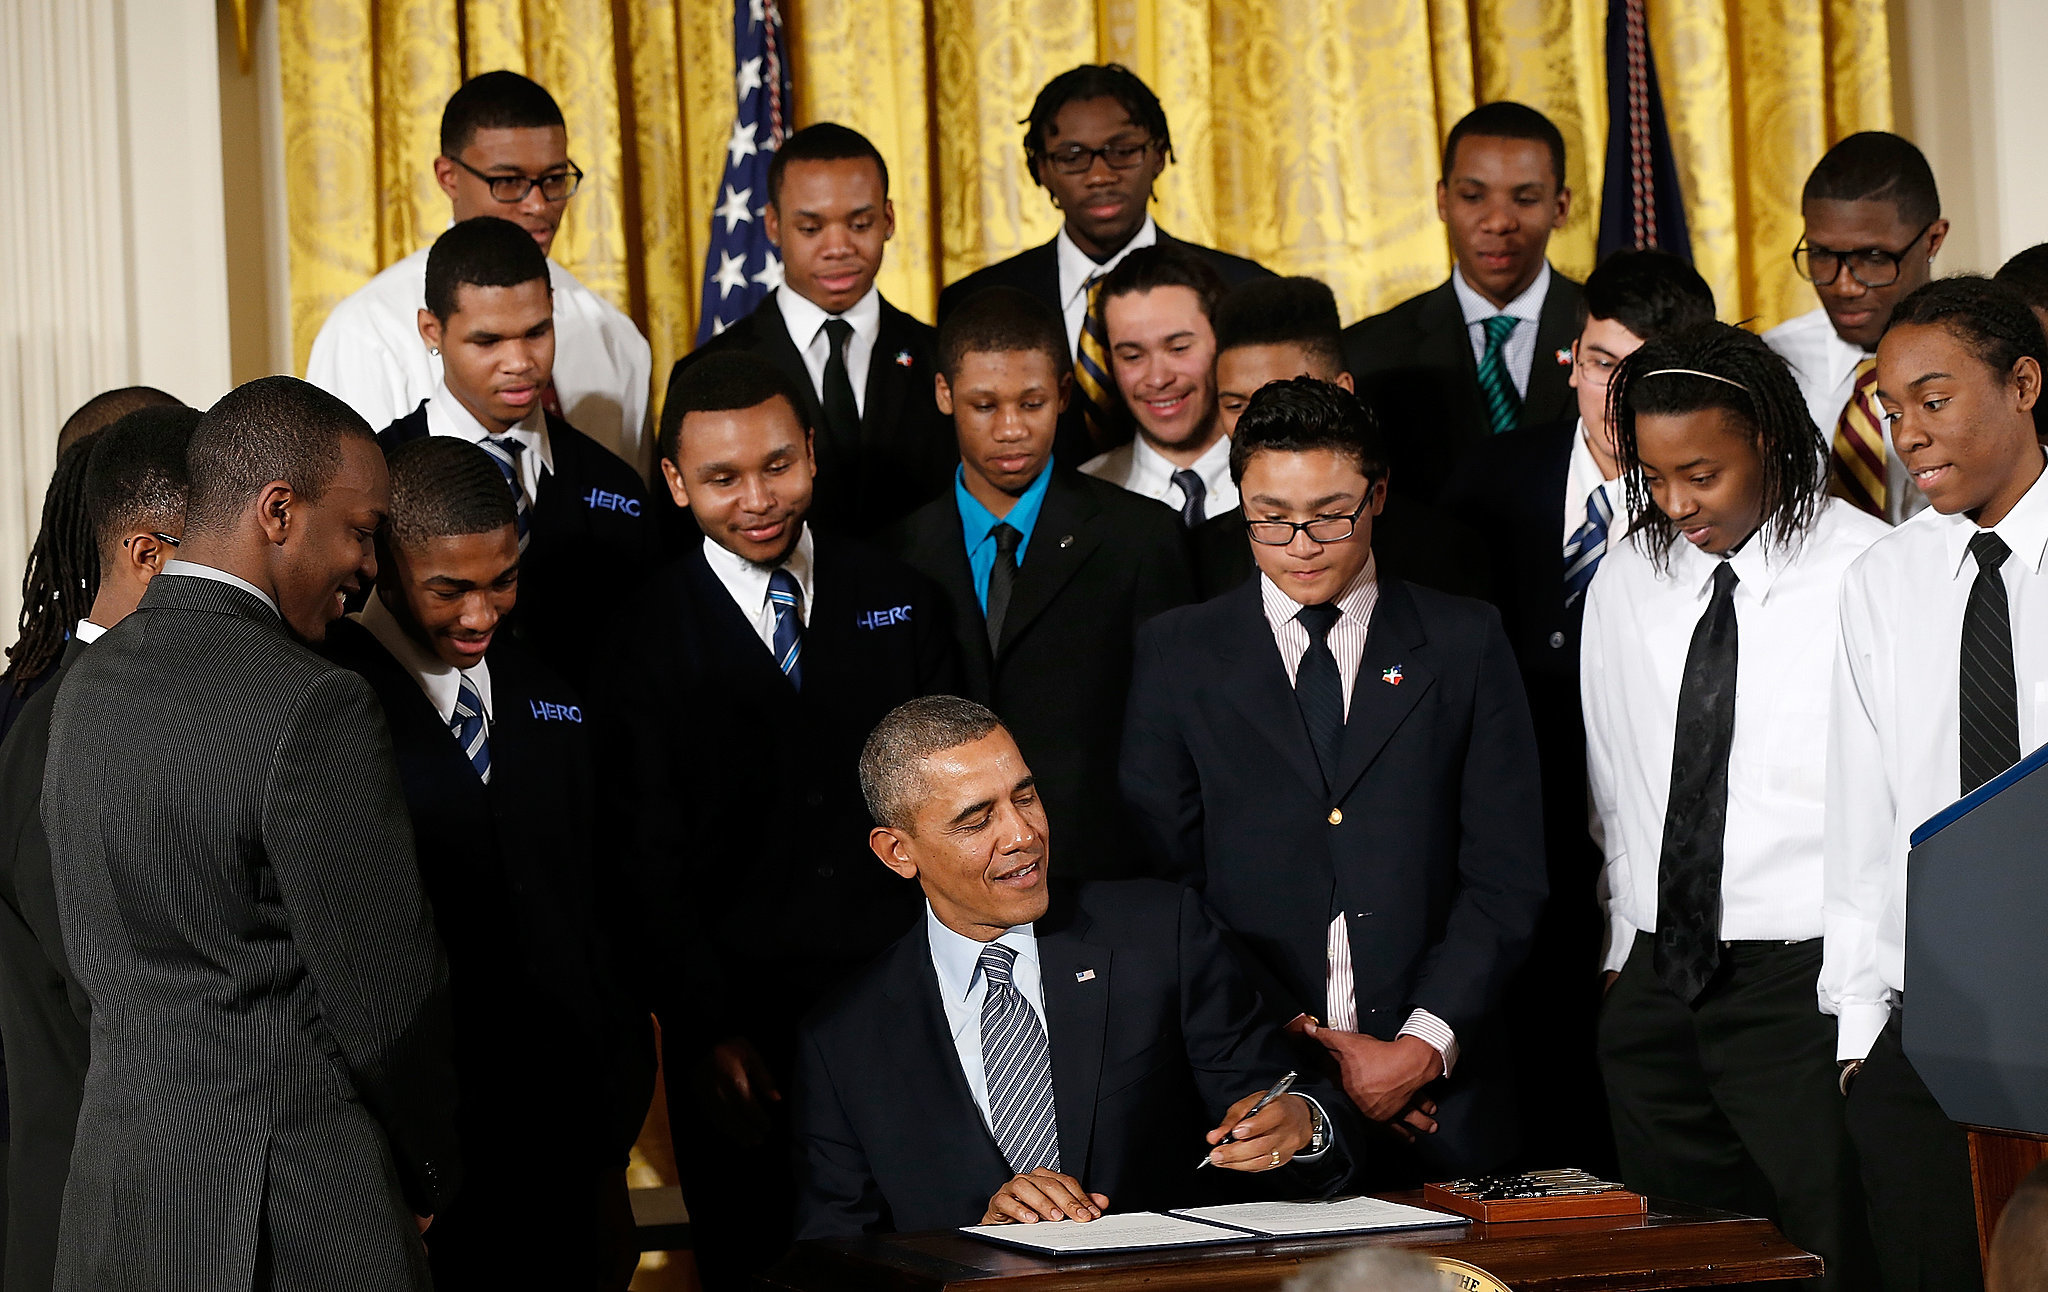 President-Obama-spoke-about-My-Brother-Keeper-initiative